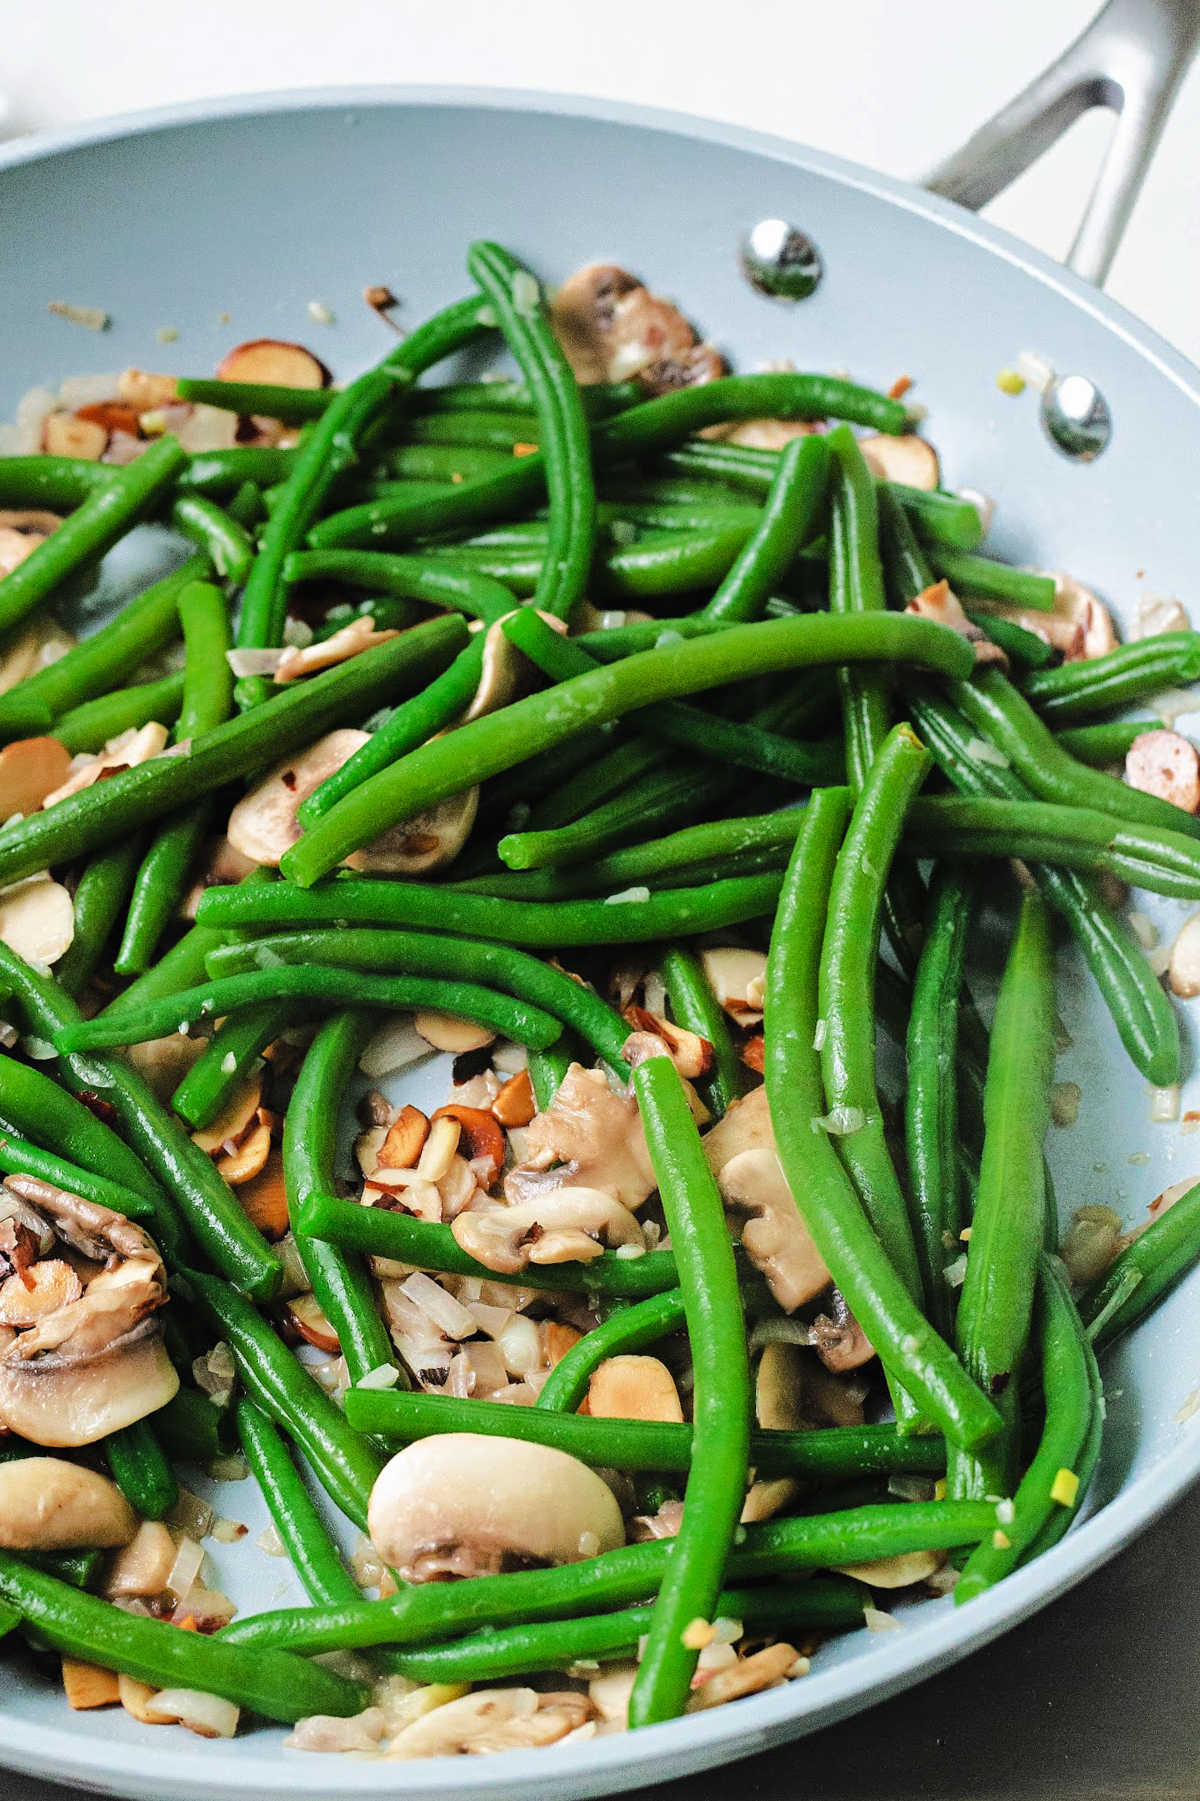 close up shot of green beans cooking in a frying pan with almonds and mushrooms.